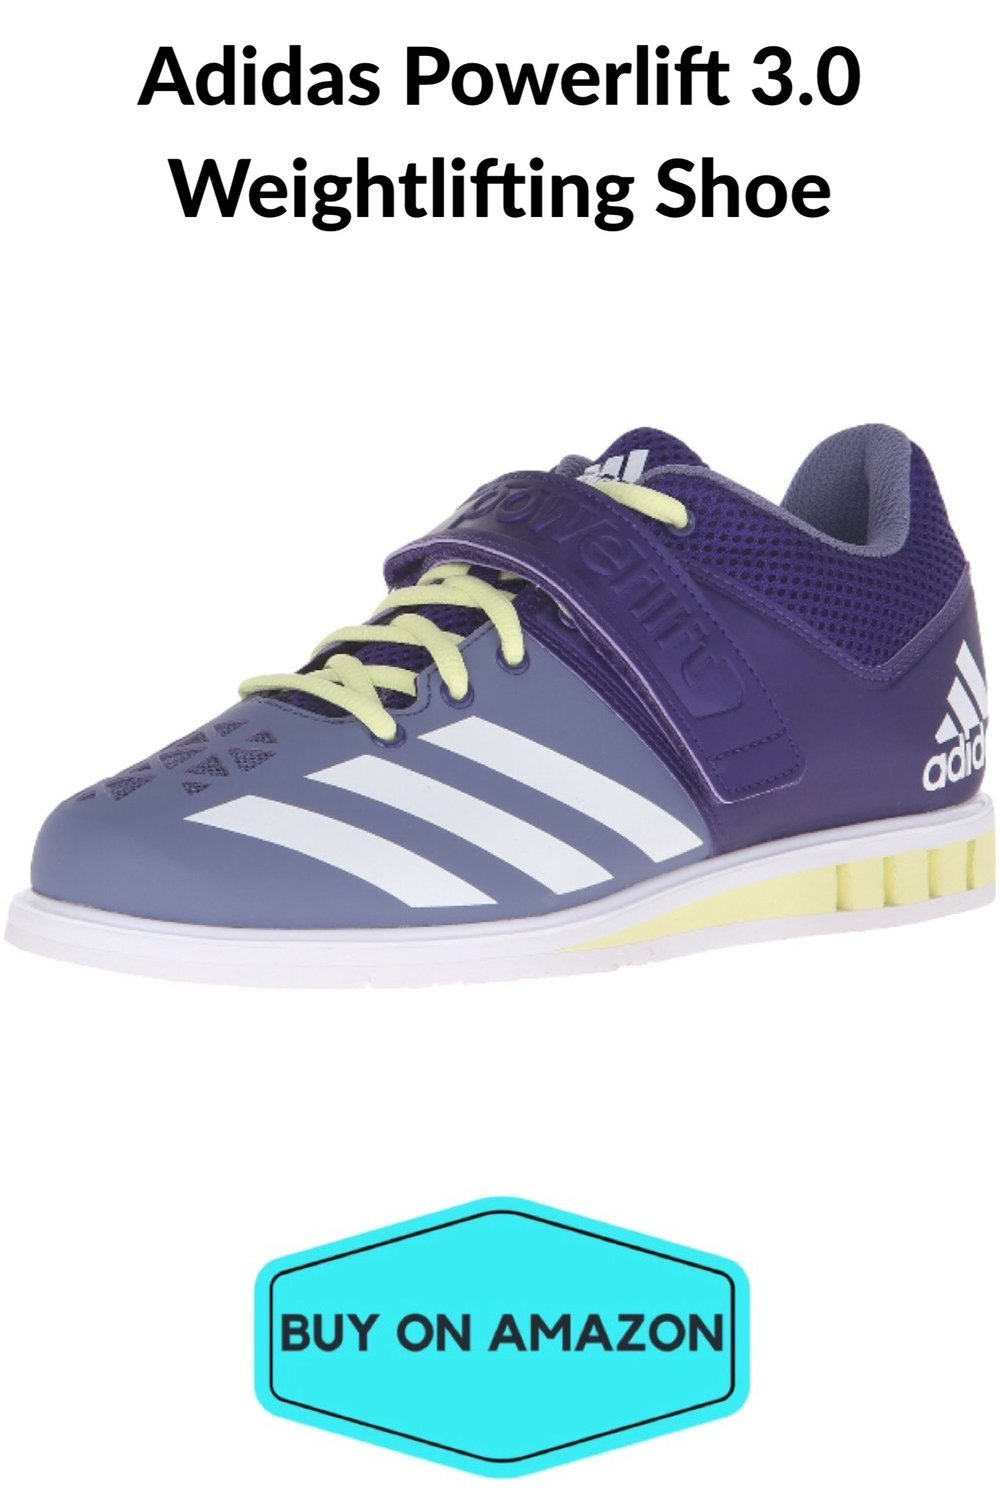 Adidas Powerlift 3.0 Women's Weightlifting Shoe